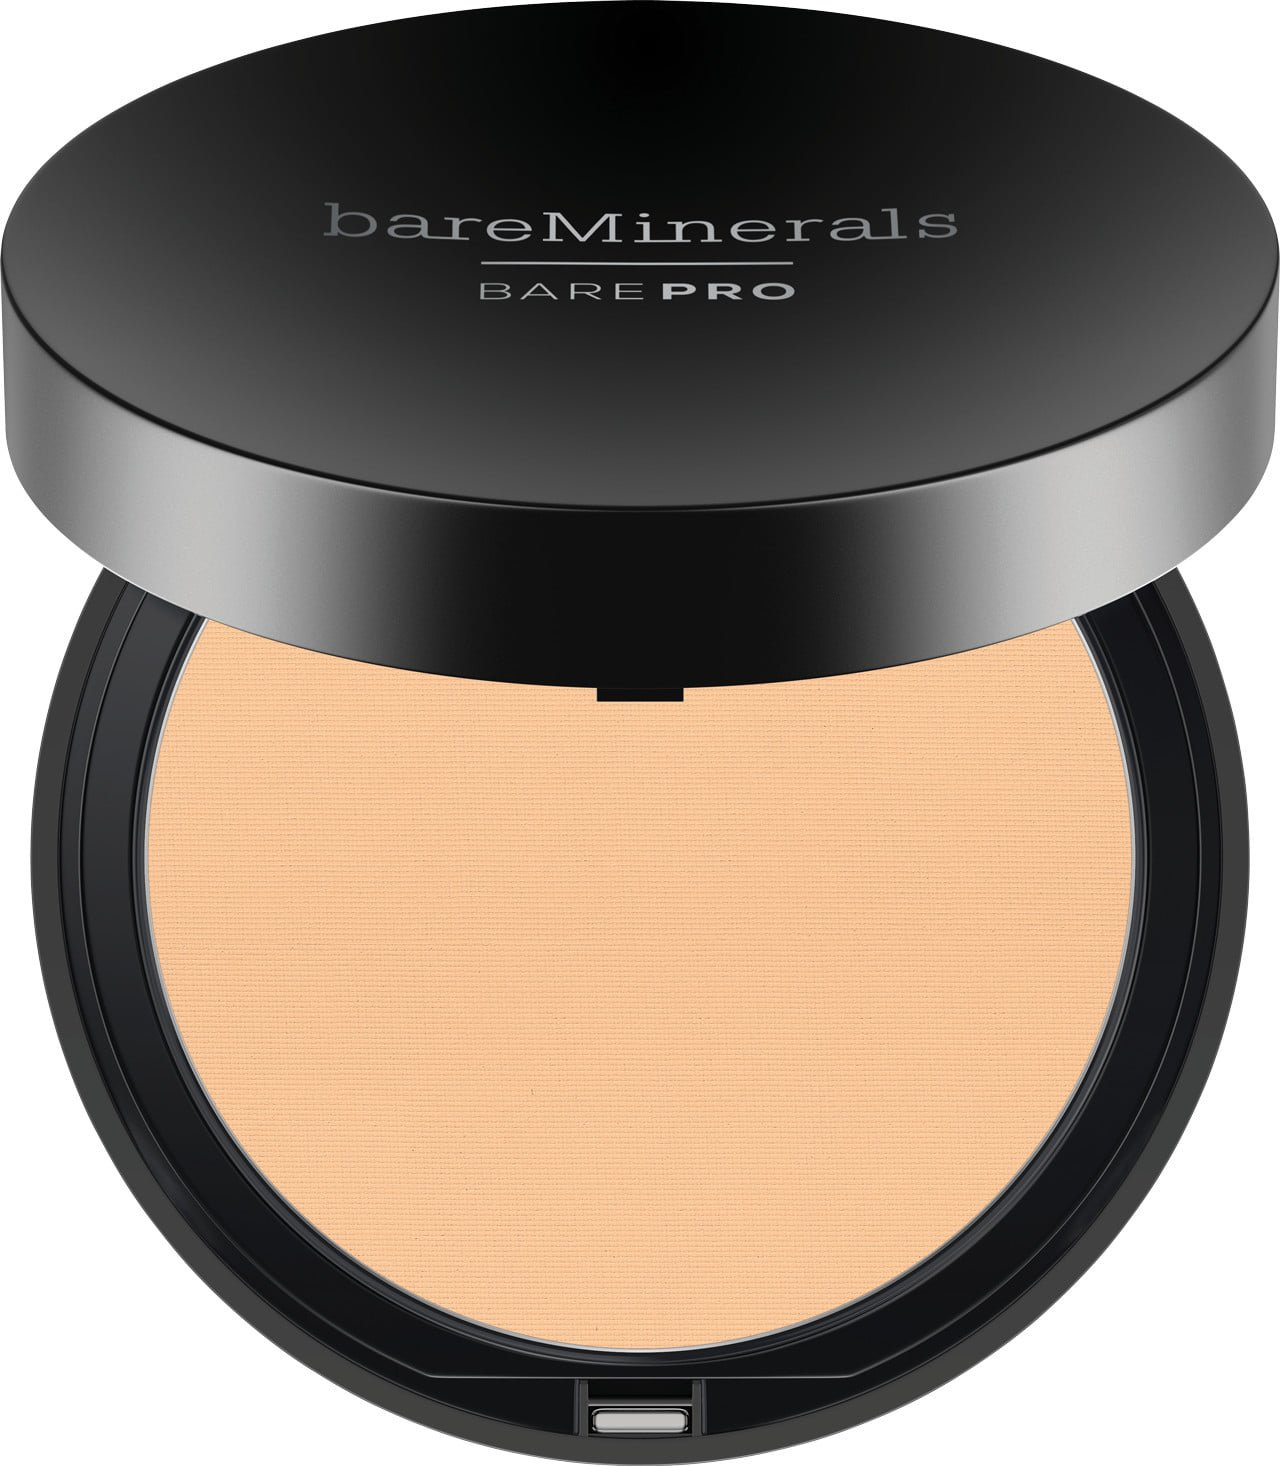 BarePro Performance Wear Powder Foundation by bareMinerals No 9 Light Natural 10g